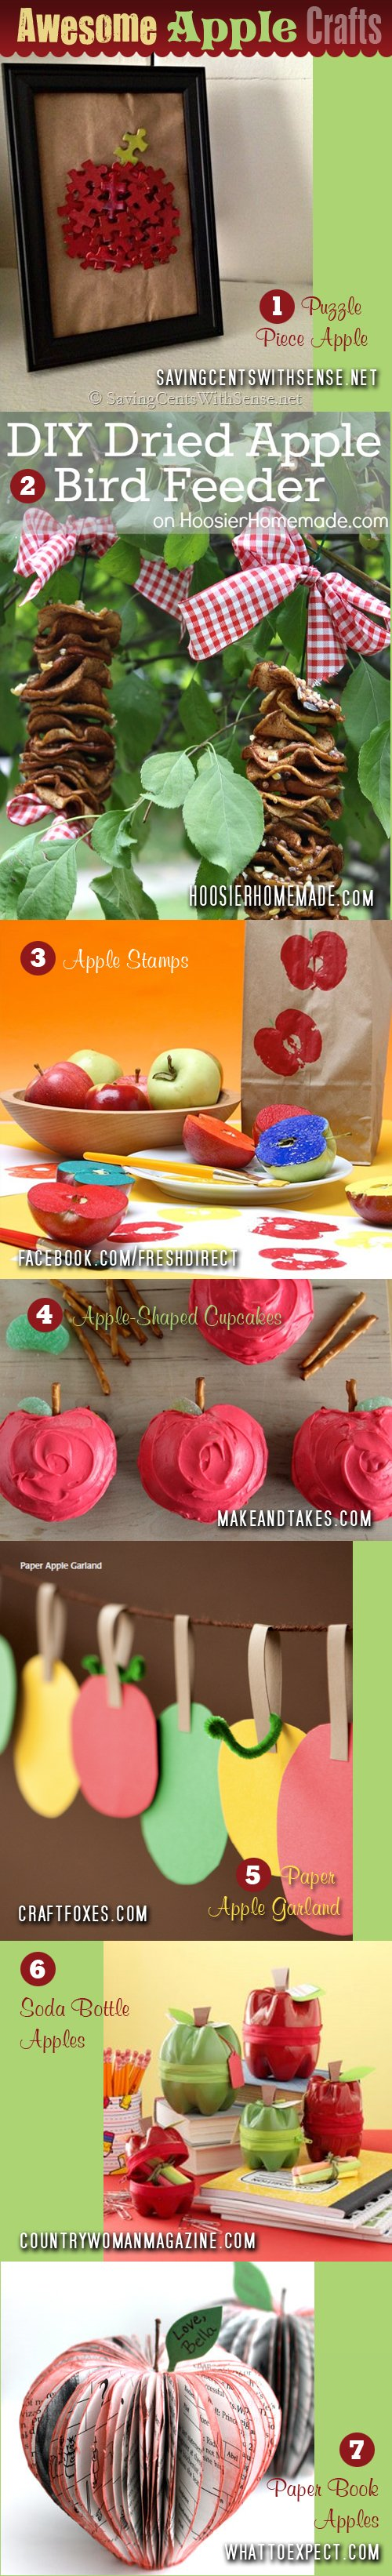 7 Awesome Apple Crafts